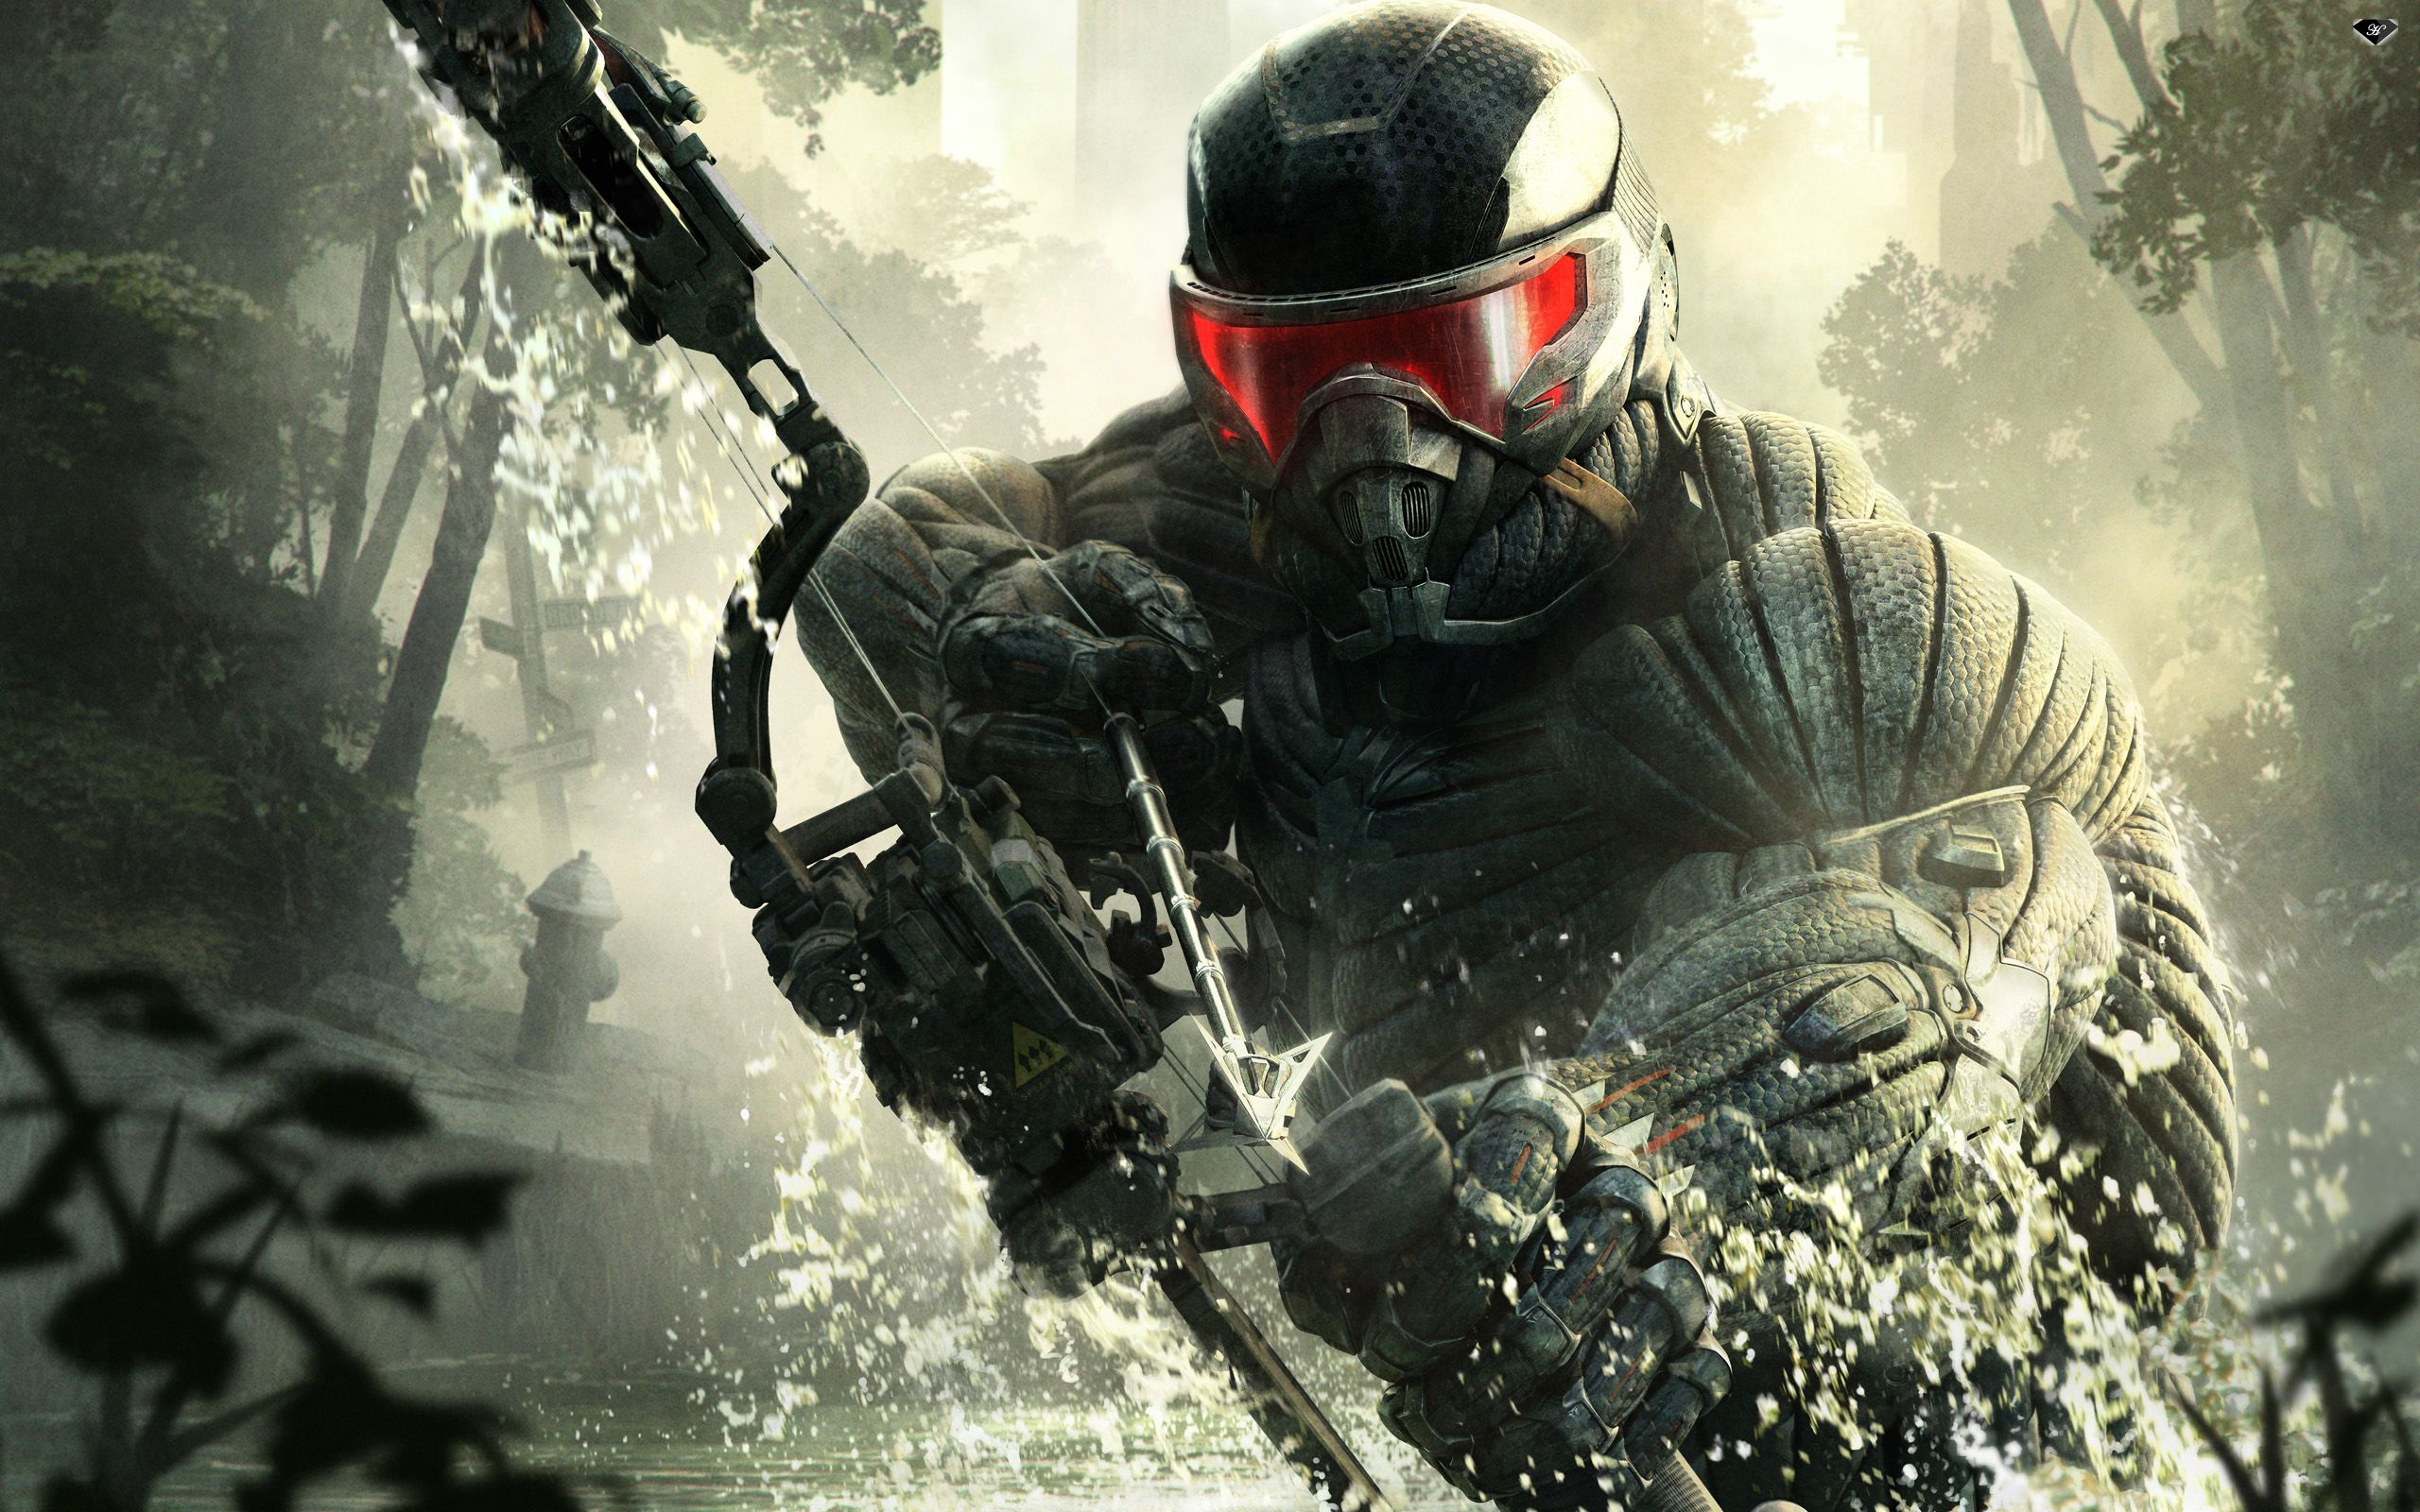 Crysis 3 Video Game Wide Games Wallpapers Pc Games Wallpapers Gaming Wallpapers Hd Gaming Wallpapers